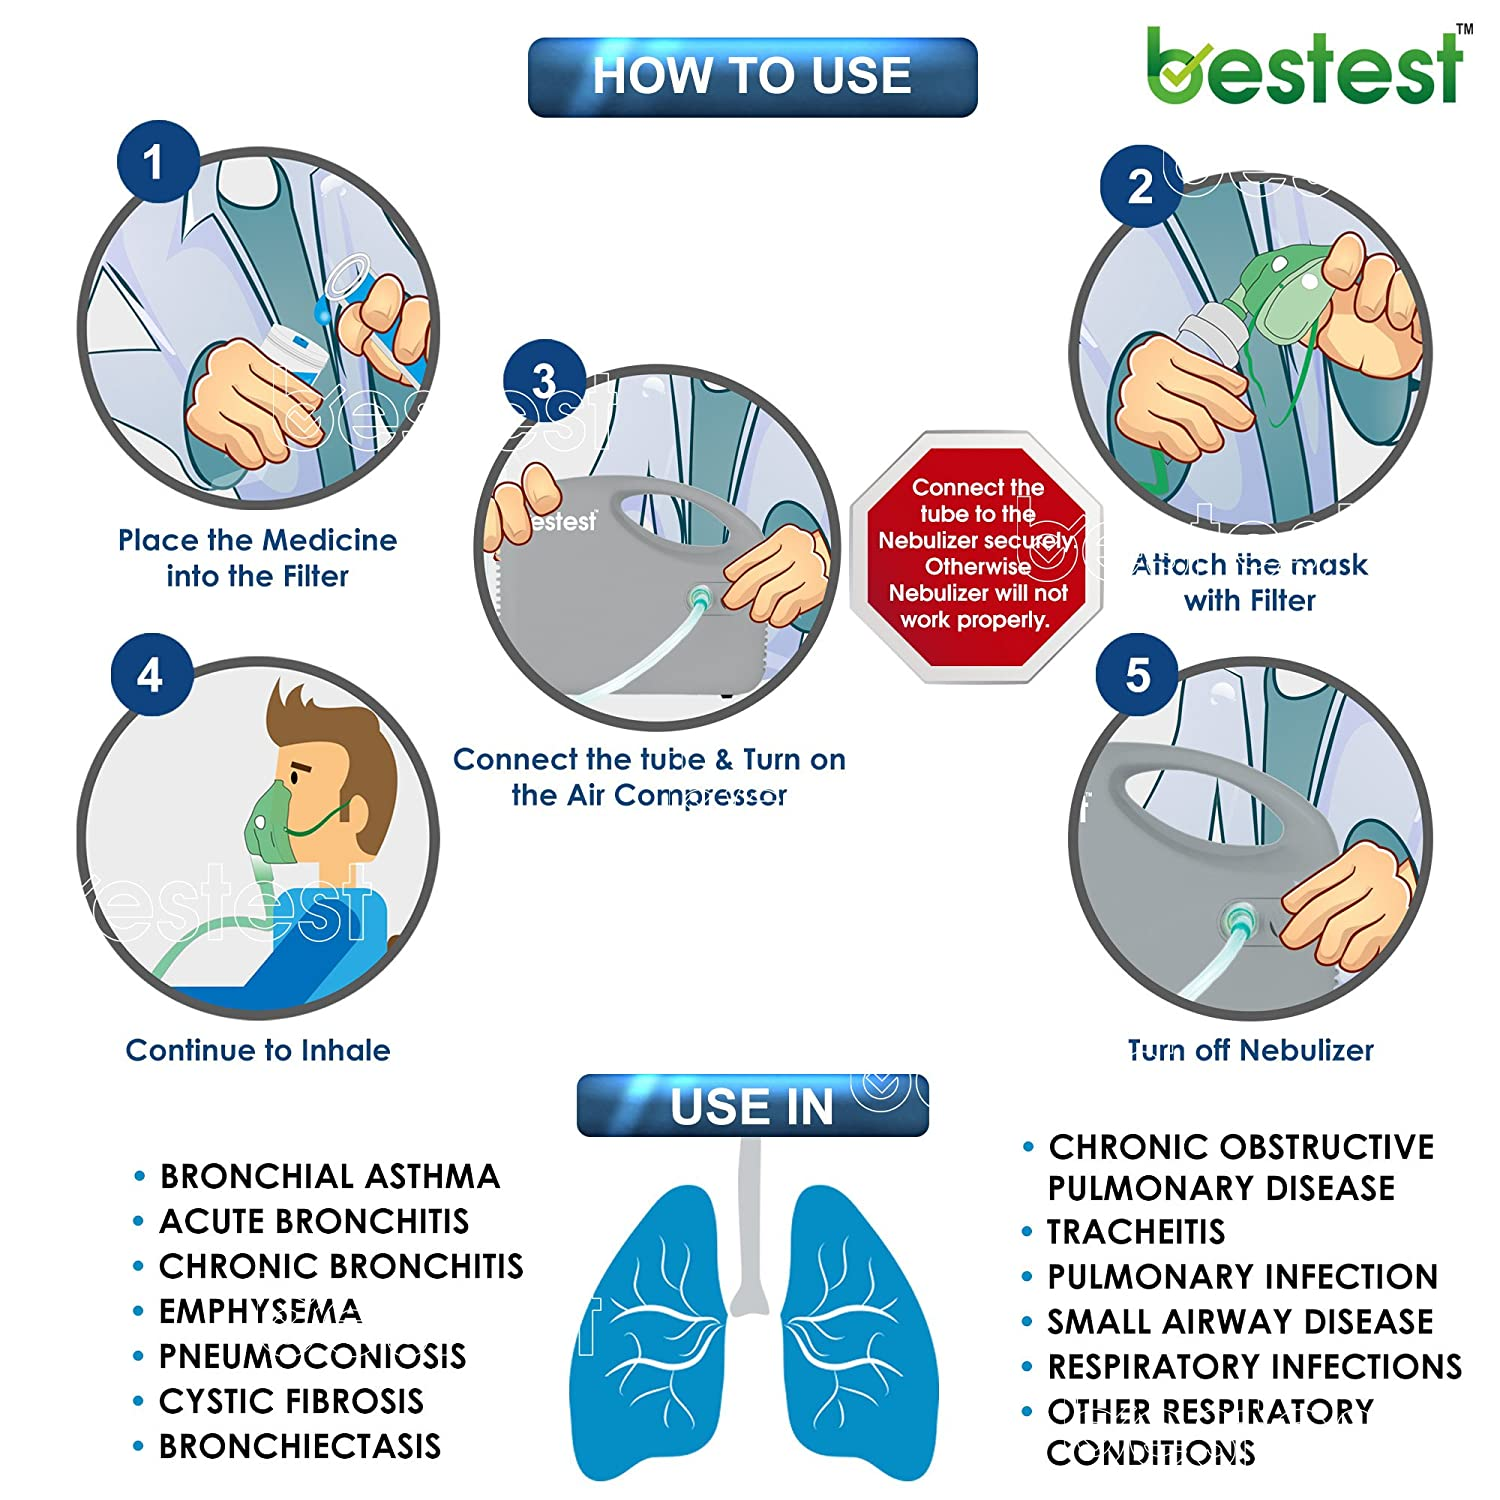 How to use a nebulizer 68